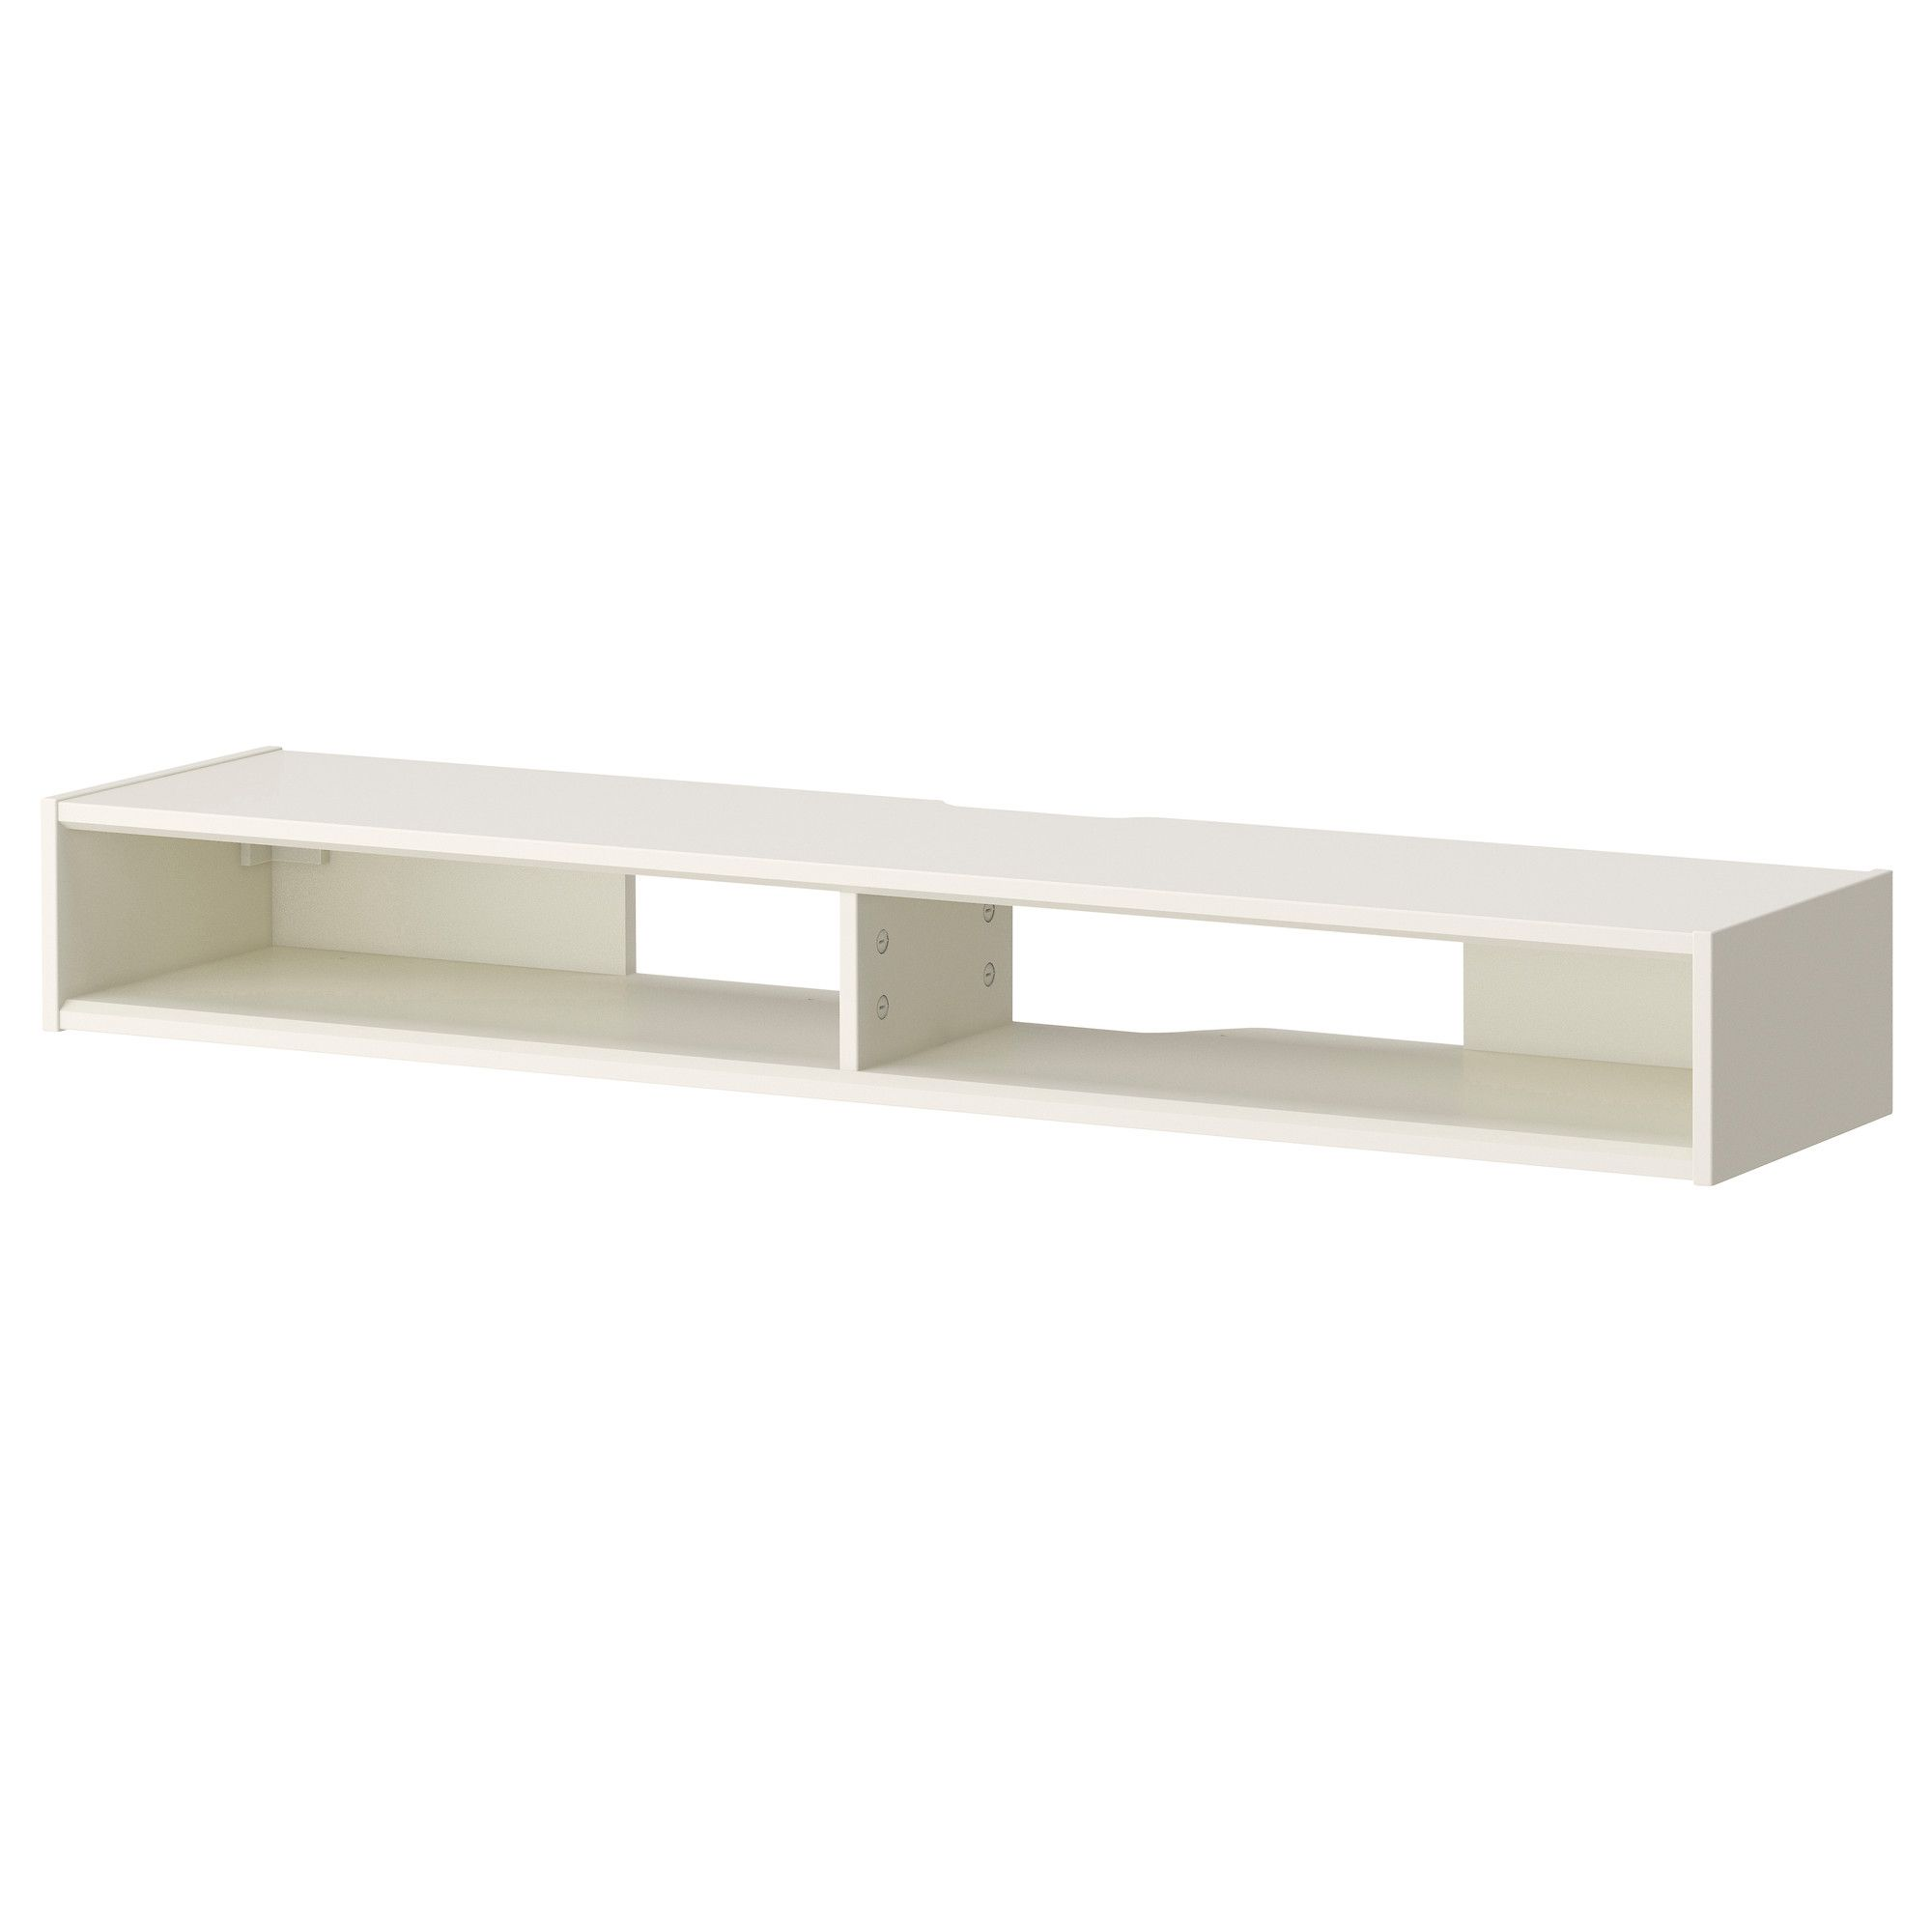 Rams Tra Media Shelf Ikea Idea For Tv Shelf Homie  # Support De Tele Ikea